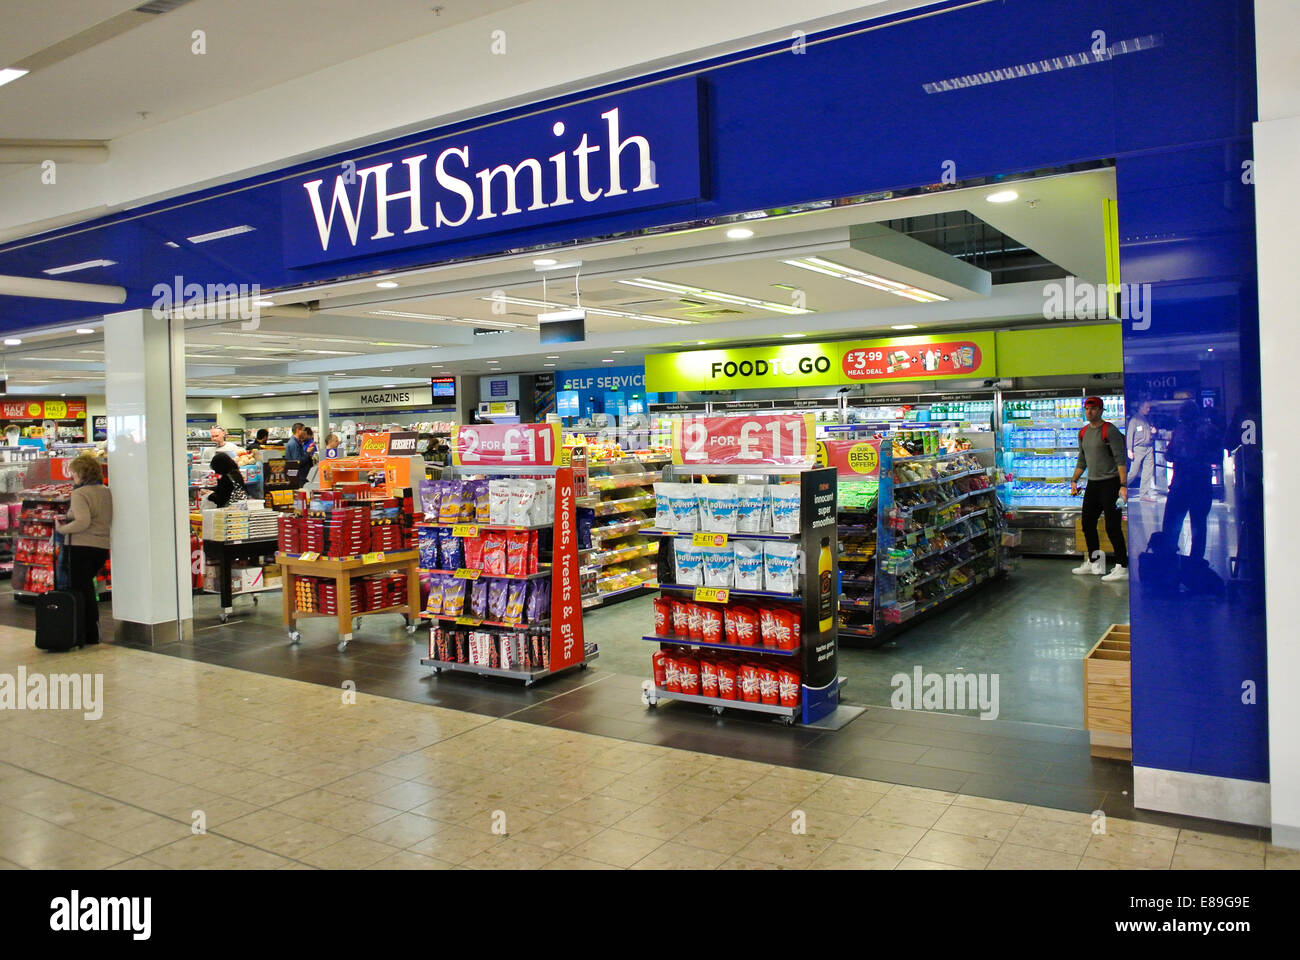 WH Smith shop store sign - Stock Image